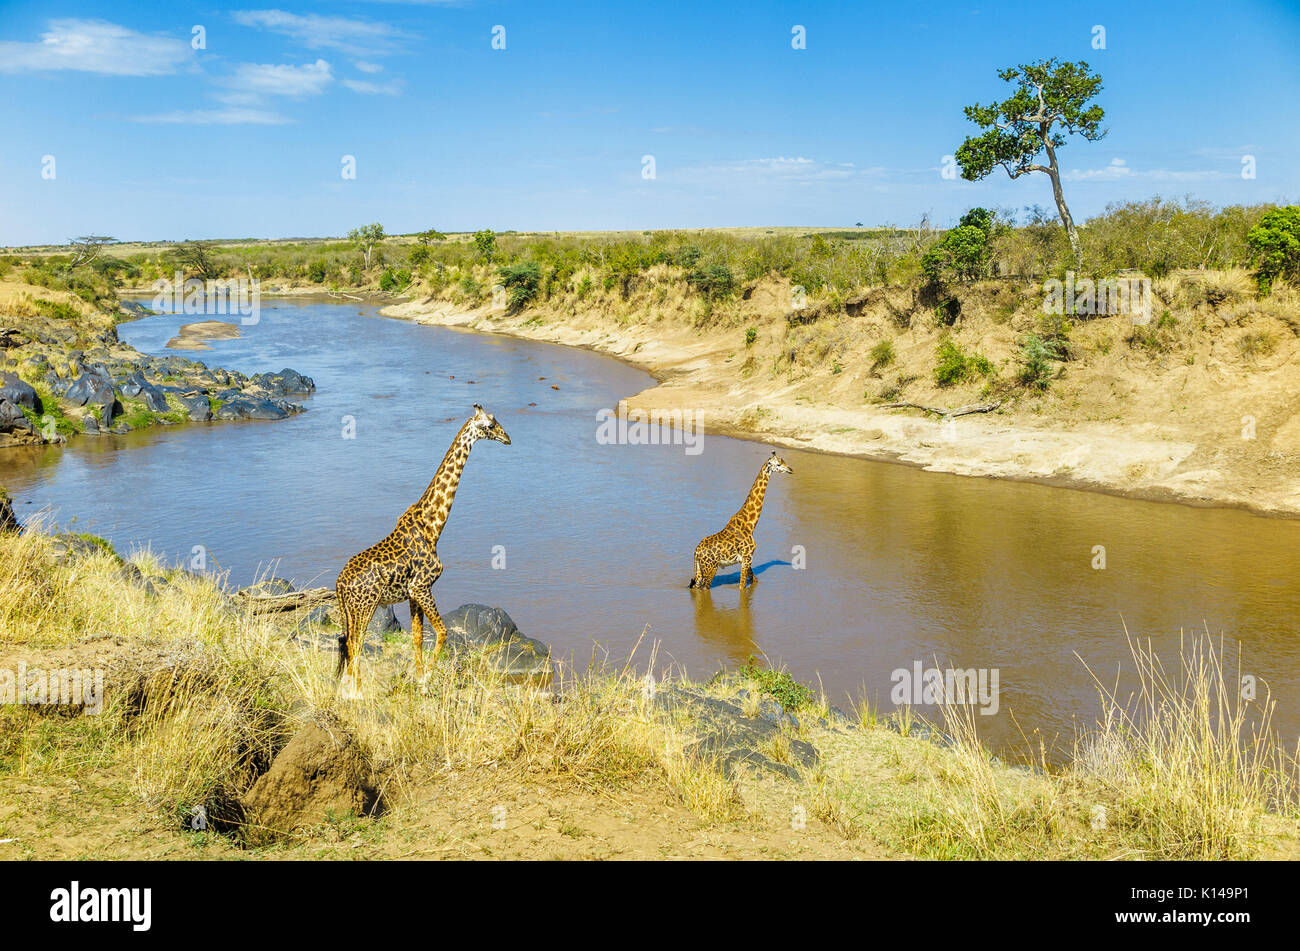 View of landscape with two Masai giraffes (Giraffa camelopardalis tippelskirchi) on the riverbank and crossing in the Mara River, Masai Mara, Kenya - Stock Image